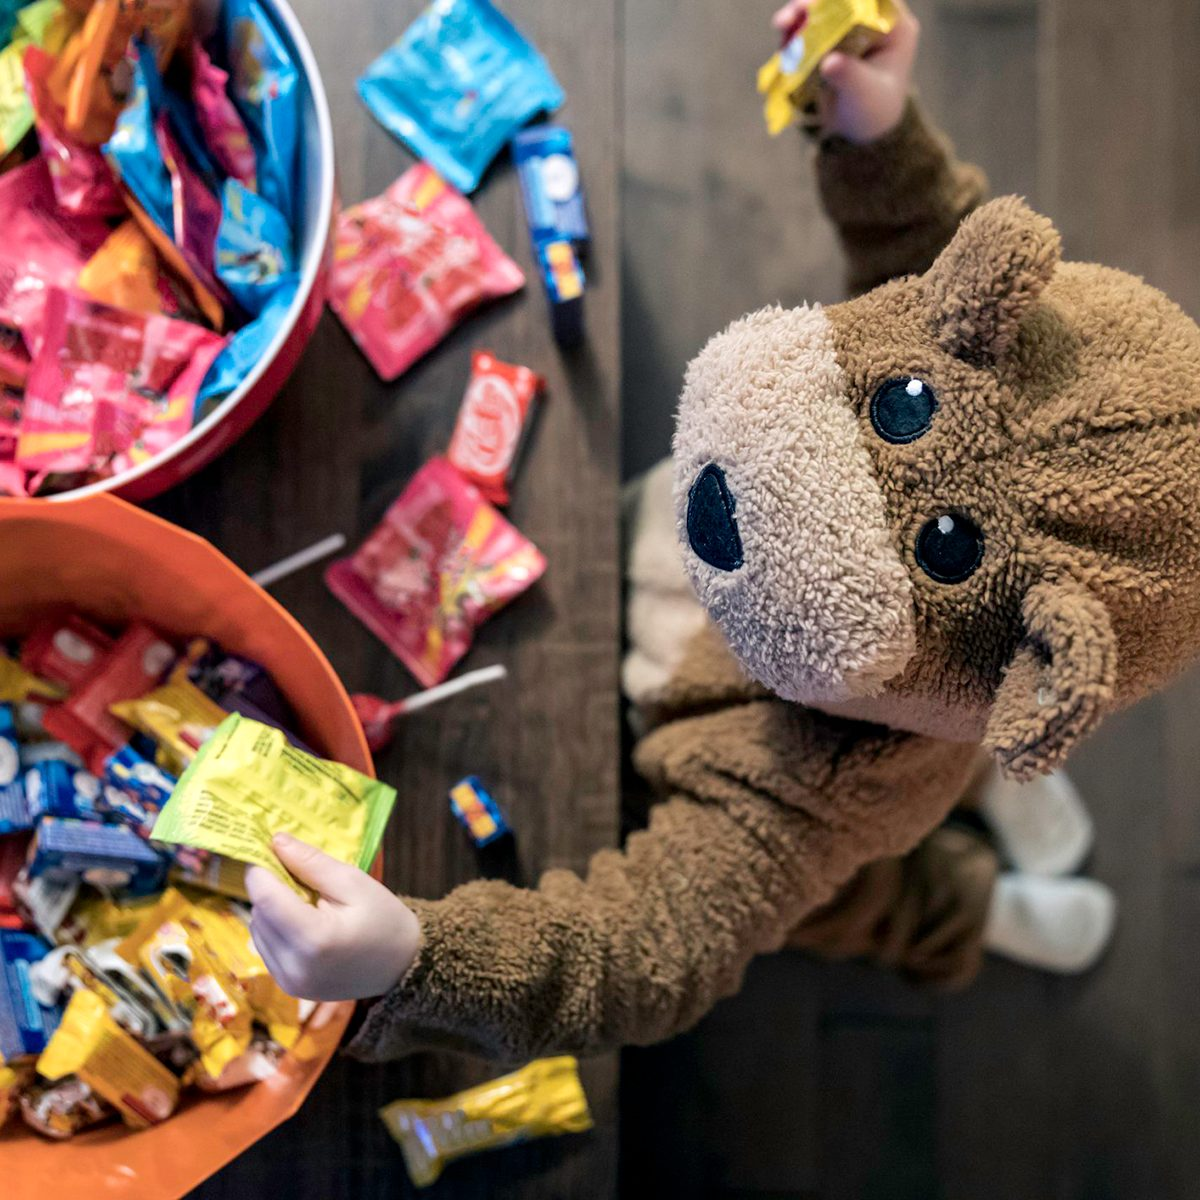 Child in teddy bear costume reaching into candy bowl